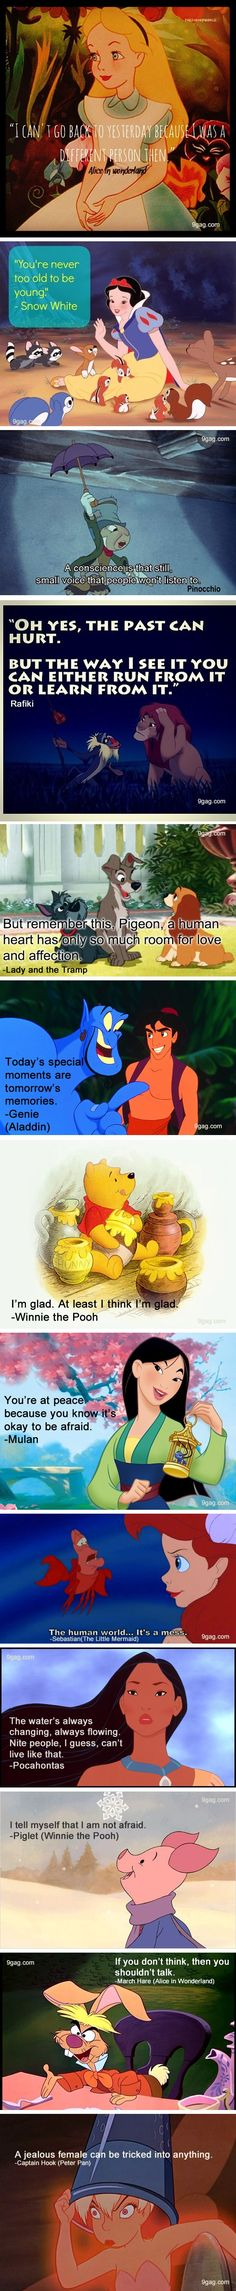 Funny pictures about Shockingly profound Disney movies quotes. Oh, and cool pics about Shockingly profound Disney movies quotes. Also, Shockingly profound Disney movies quotes. Movies Quotes, Disney Movie Quotes, Disney Memes, Funny Quotes, Funny Disney, Disney Sayings, Humor Quotes, Life Quotes, Disney Fonts